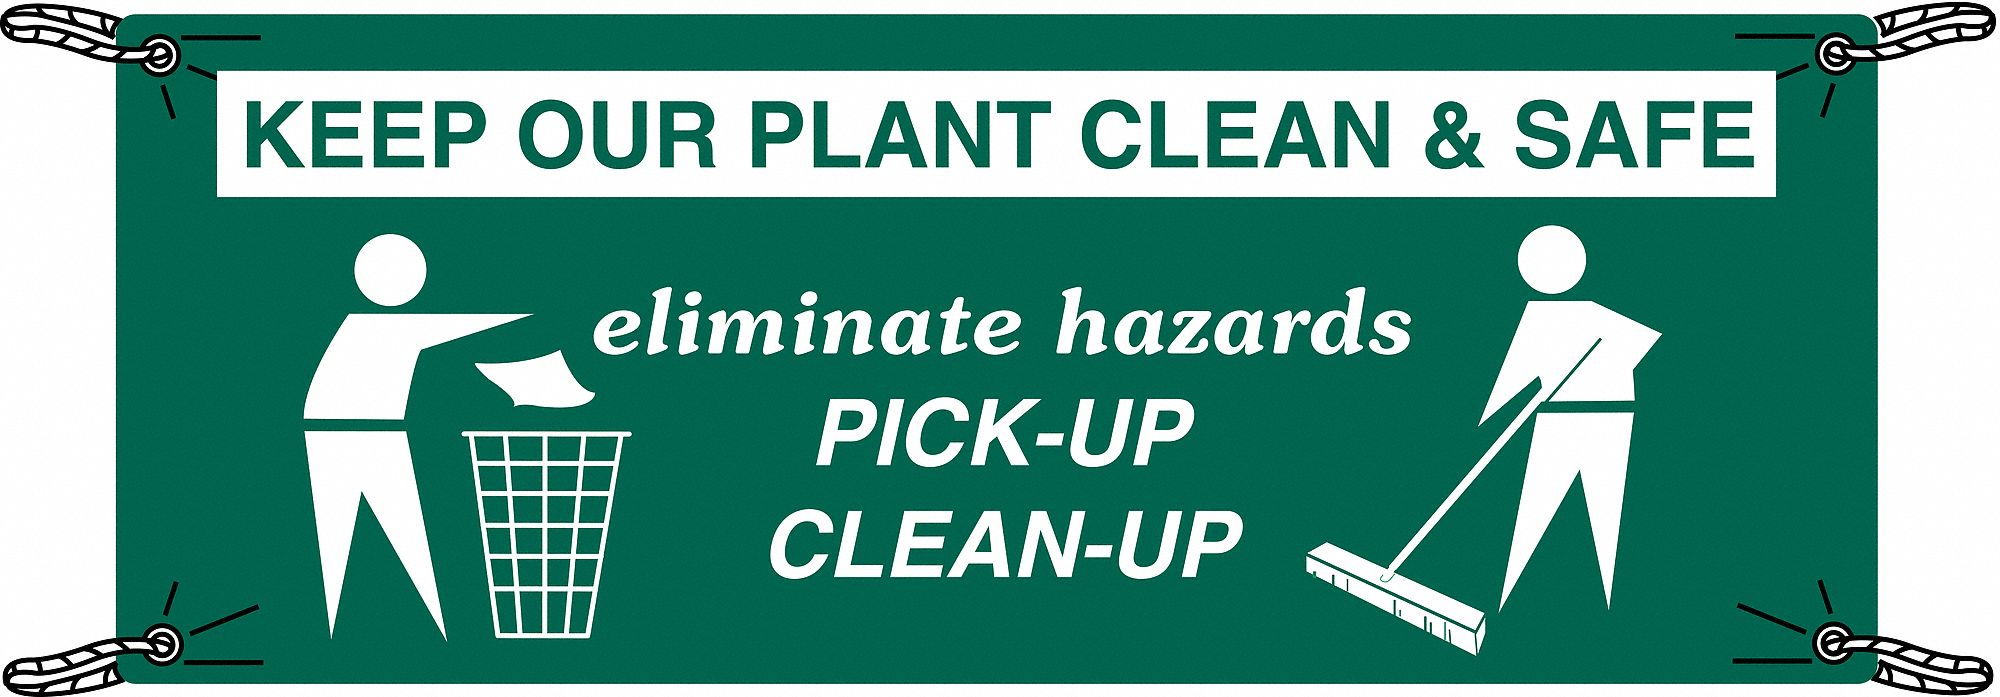 Safety Banner,  Safety Banner Legend Eliminate Hazards Pick-Up Clean-Up,  48 in x 120 in,  English